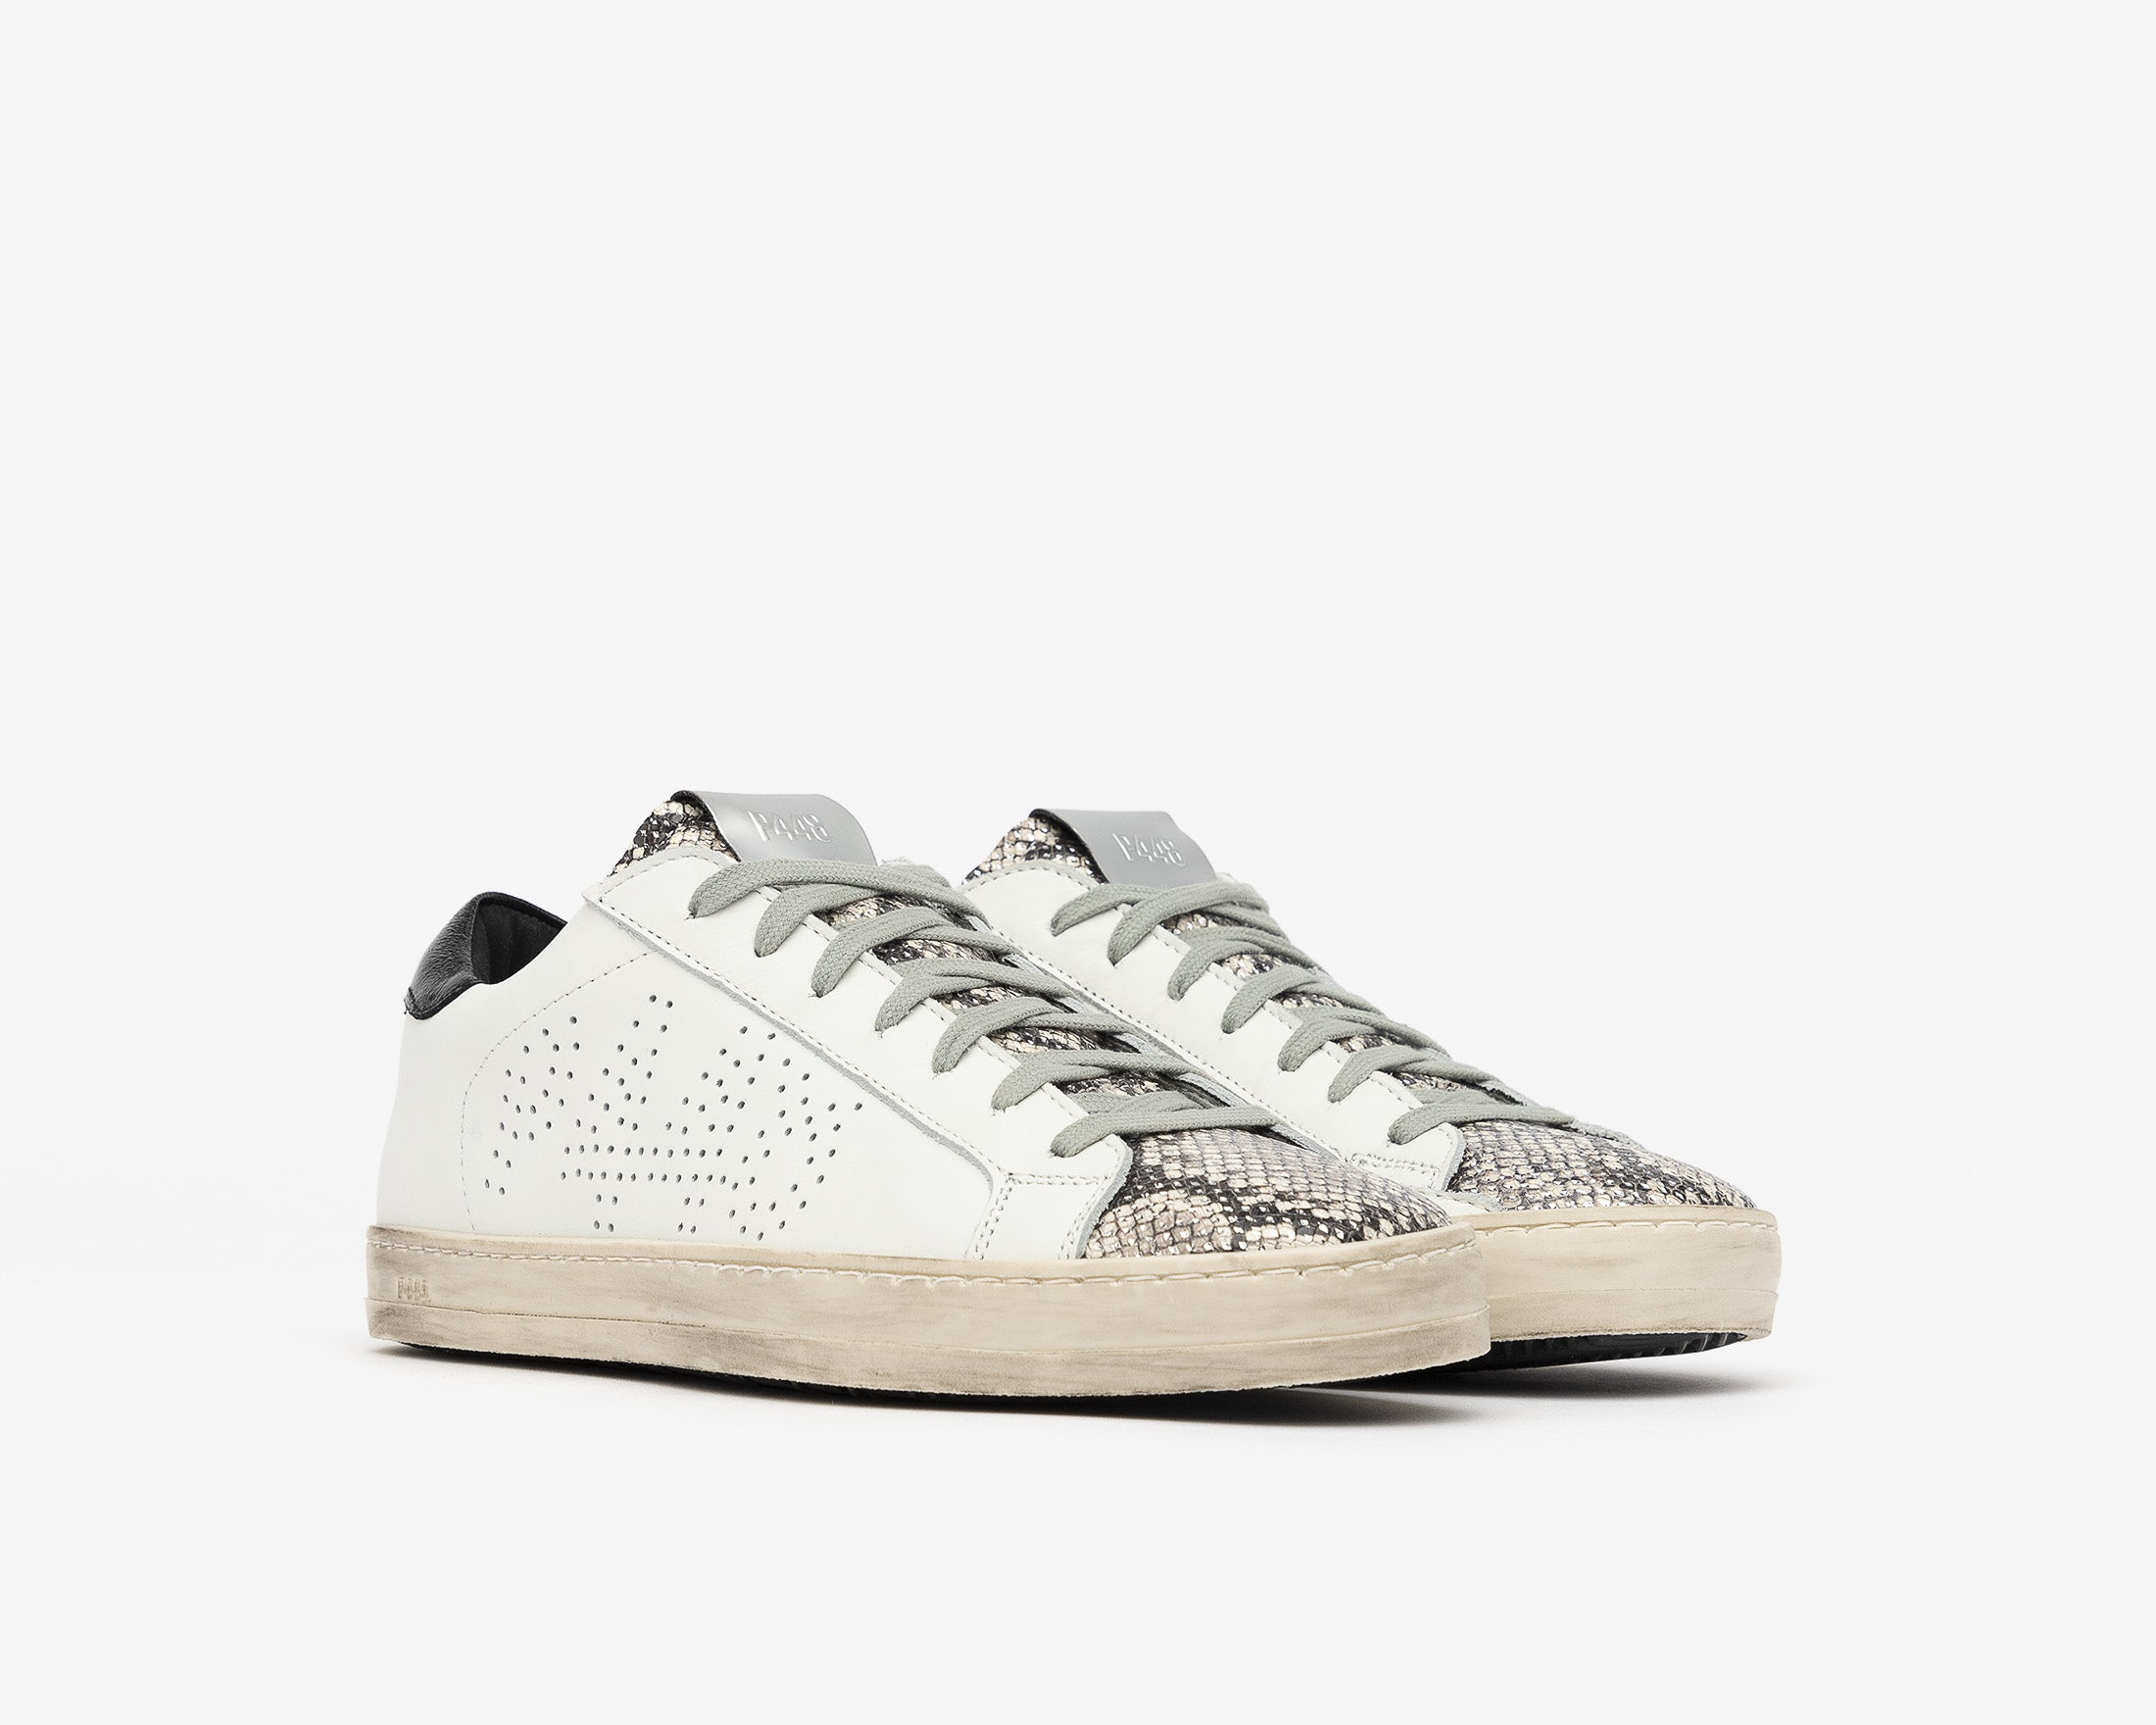 John Low-Top Sneaker in White/Silver Python - Side